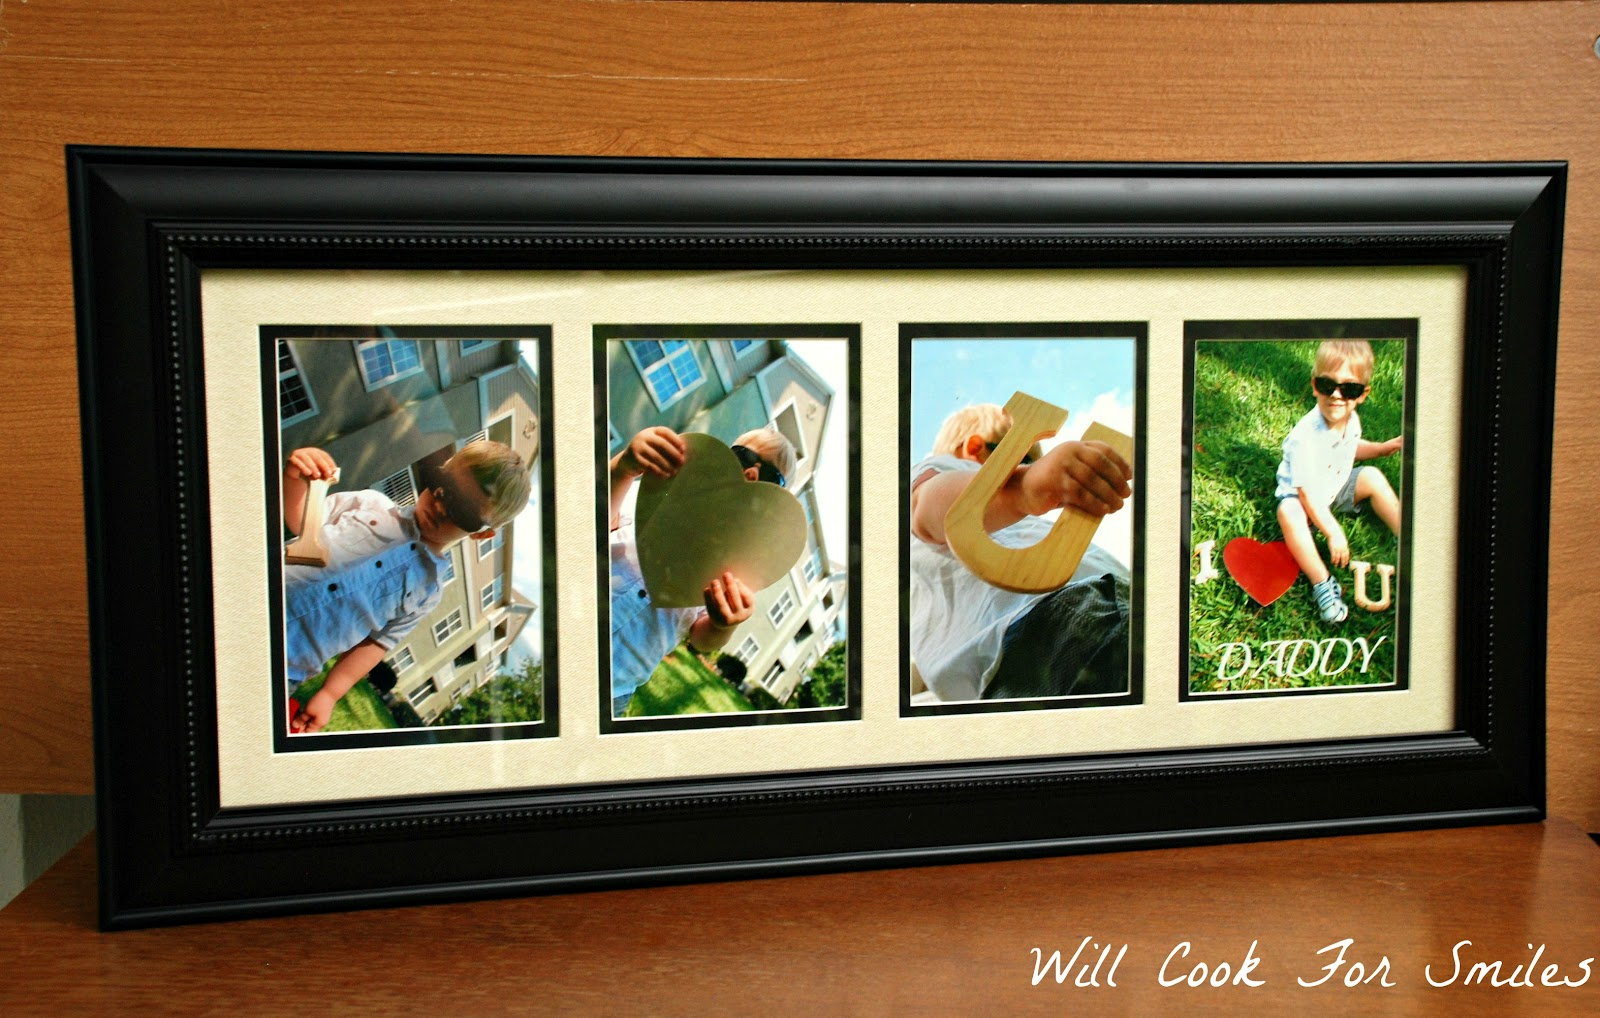 Our Father Day Gift I Love You Daddy Picture Frame Will Cook